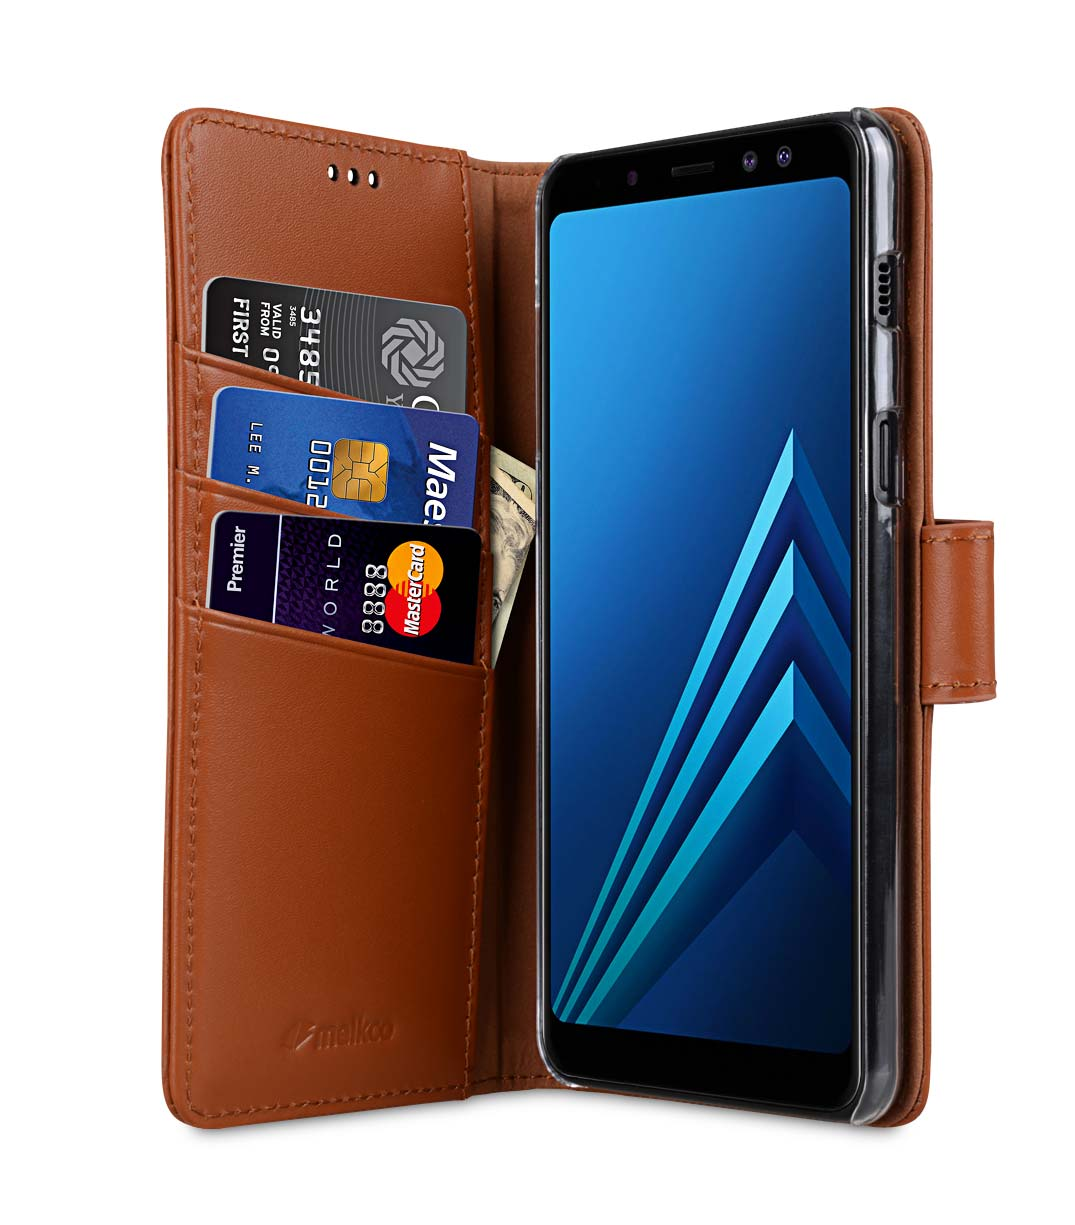 separation shoes a740a 746d3 Premium Leather Case for Samsung Galaxy A8 Plus (2018) - Wallet Book Clear  Type Stand